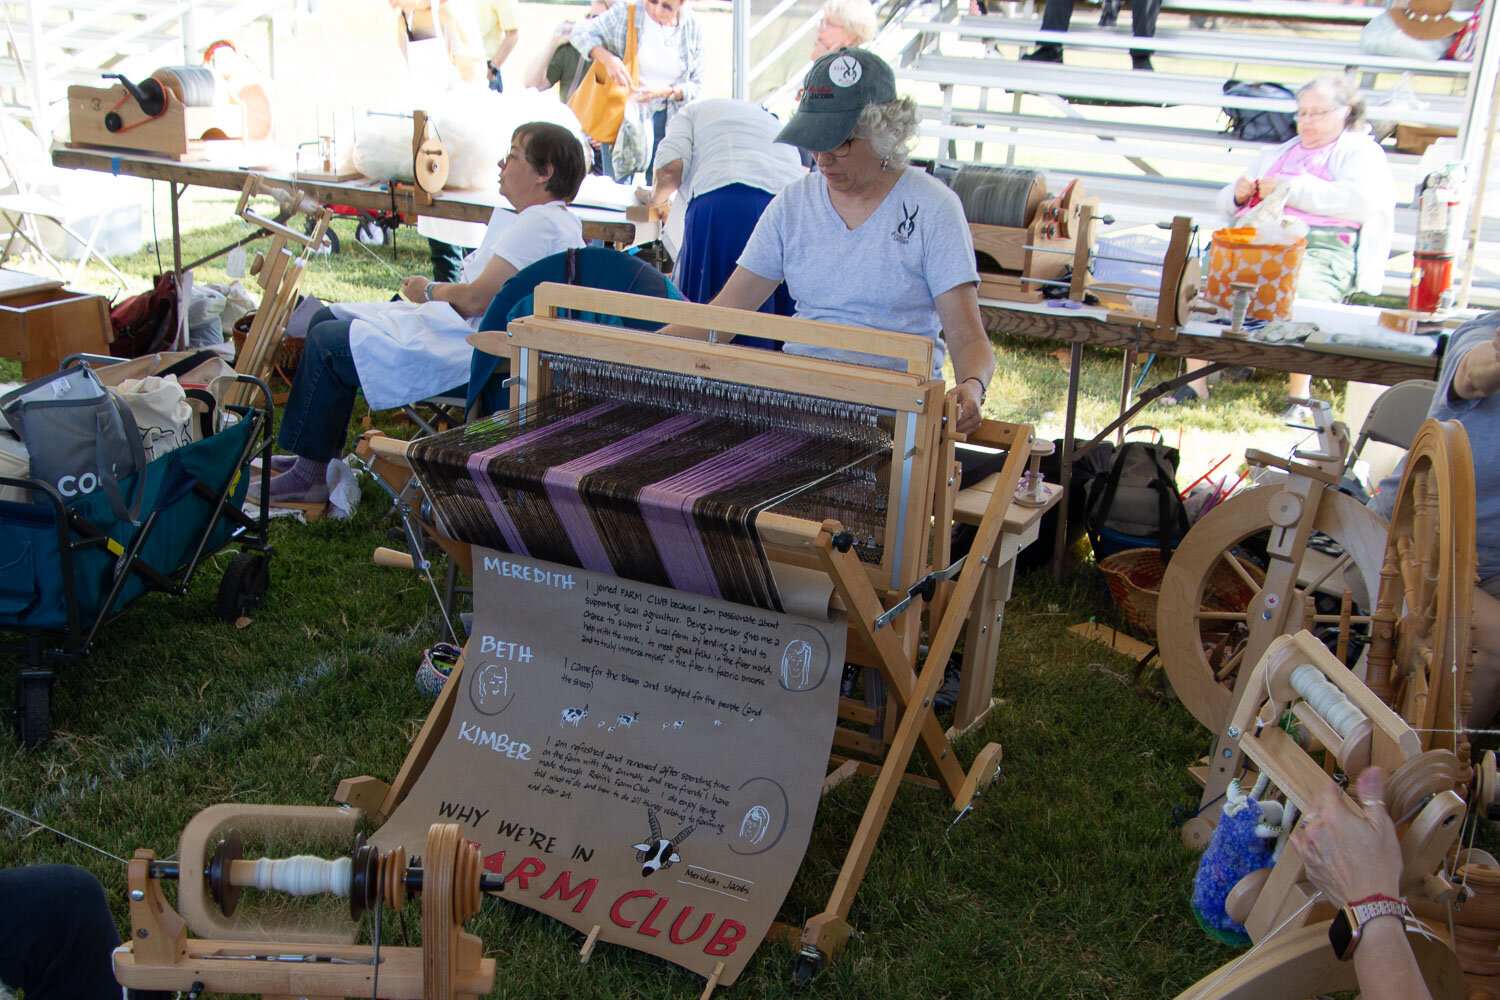 Weaving at sheep to shawl contest